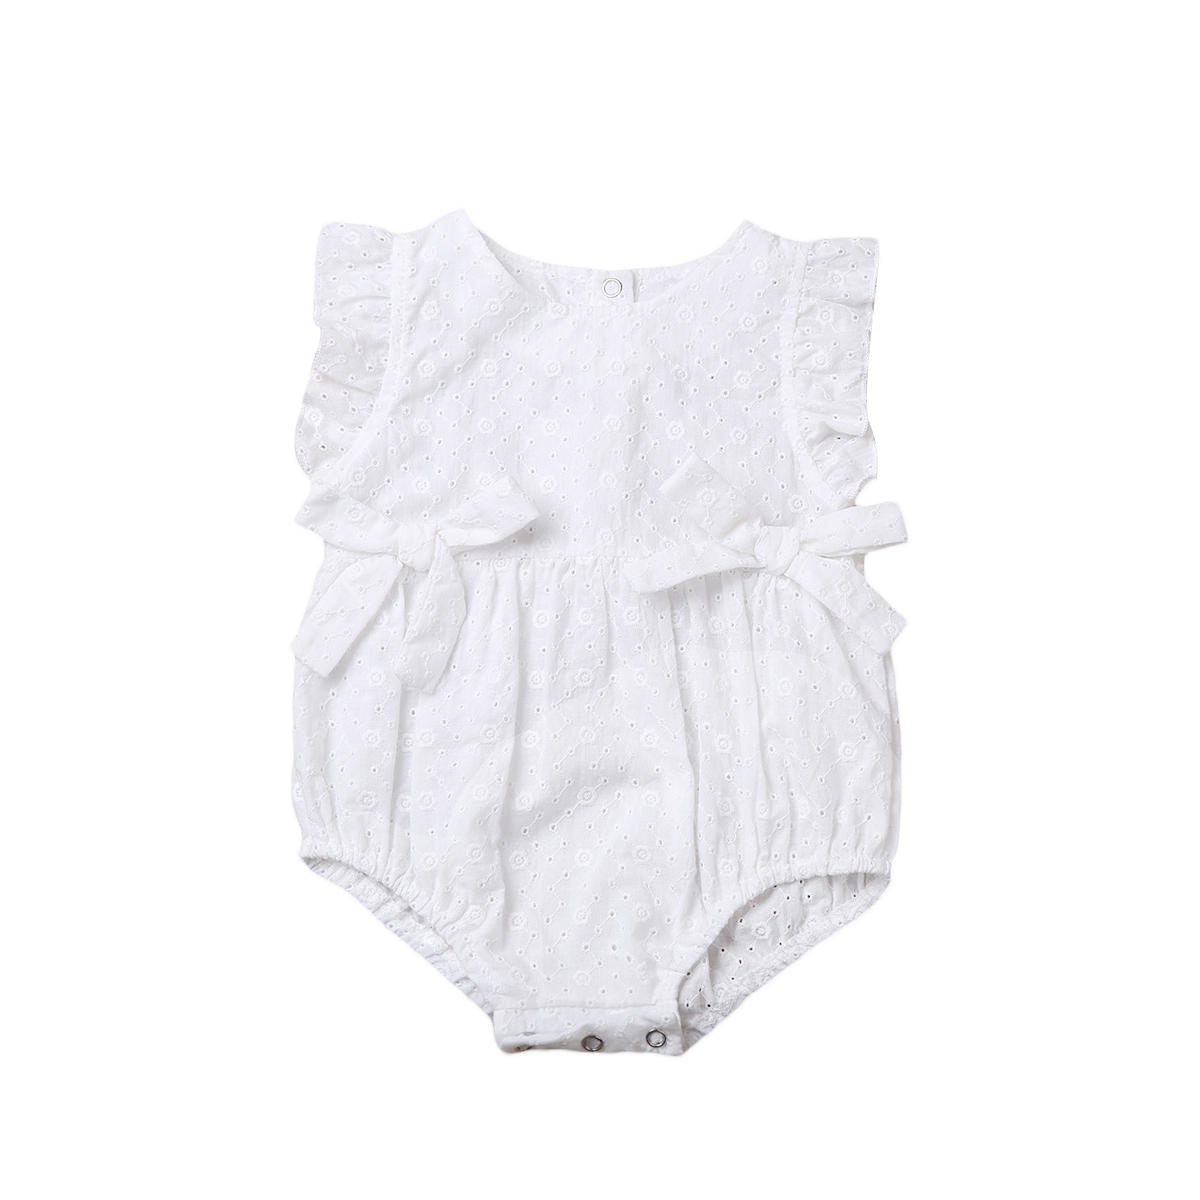 3 color!Cute Newborn Baby Girls Romper Floral Lace Romper Bowknot Clothes One Pieces Jumpsuit Outfit